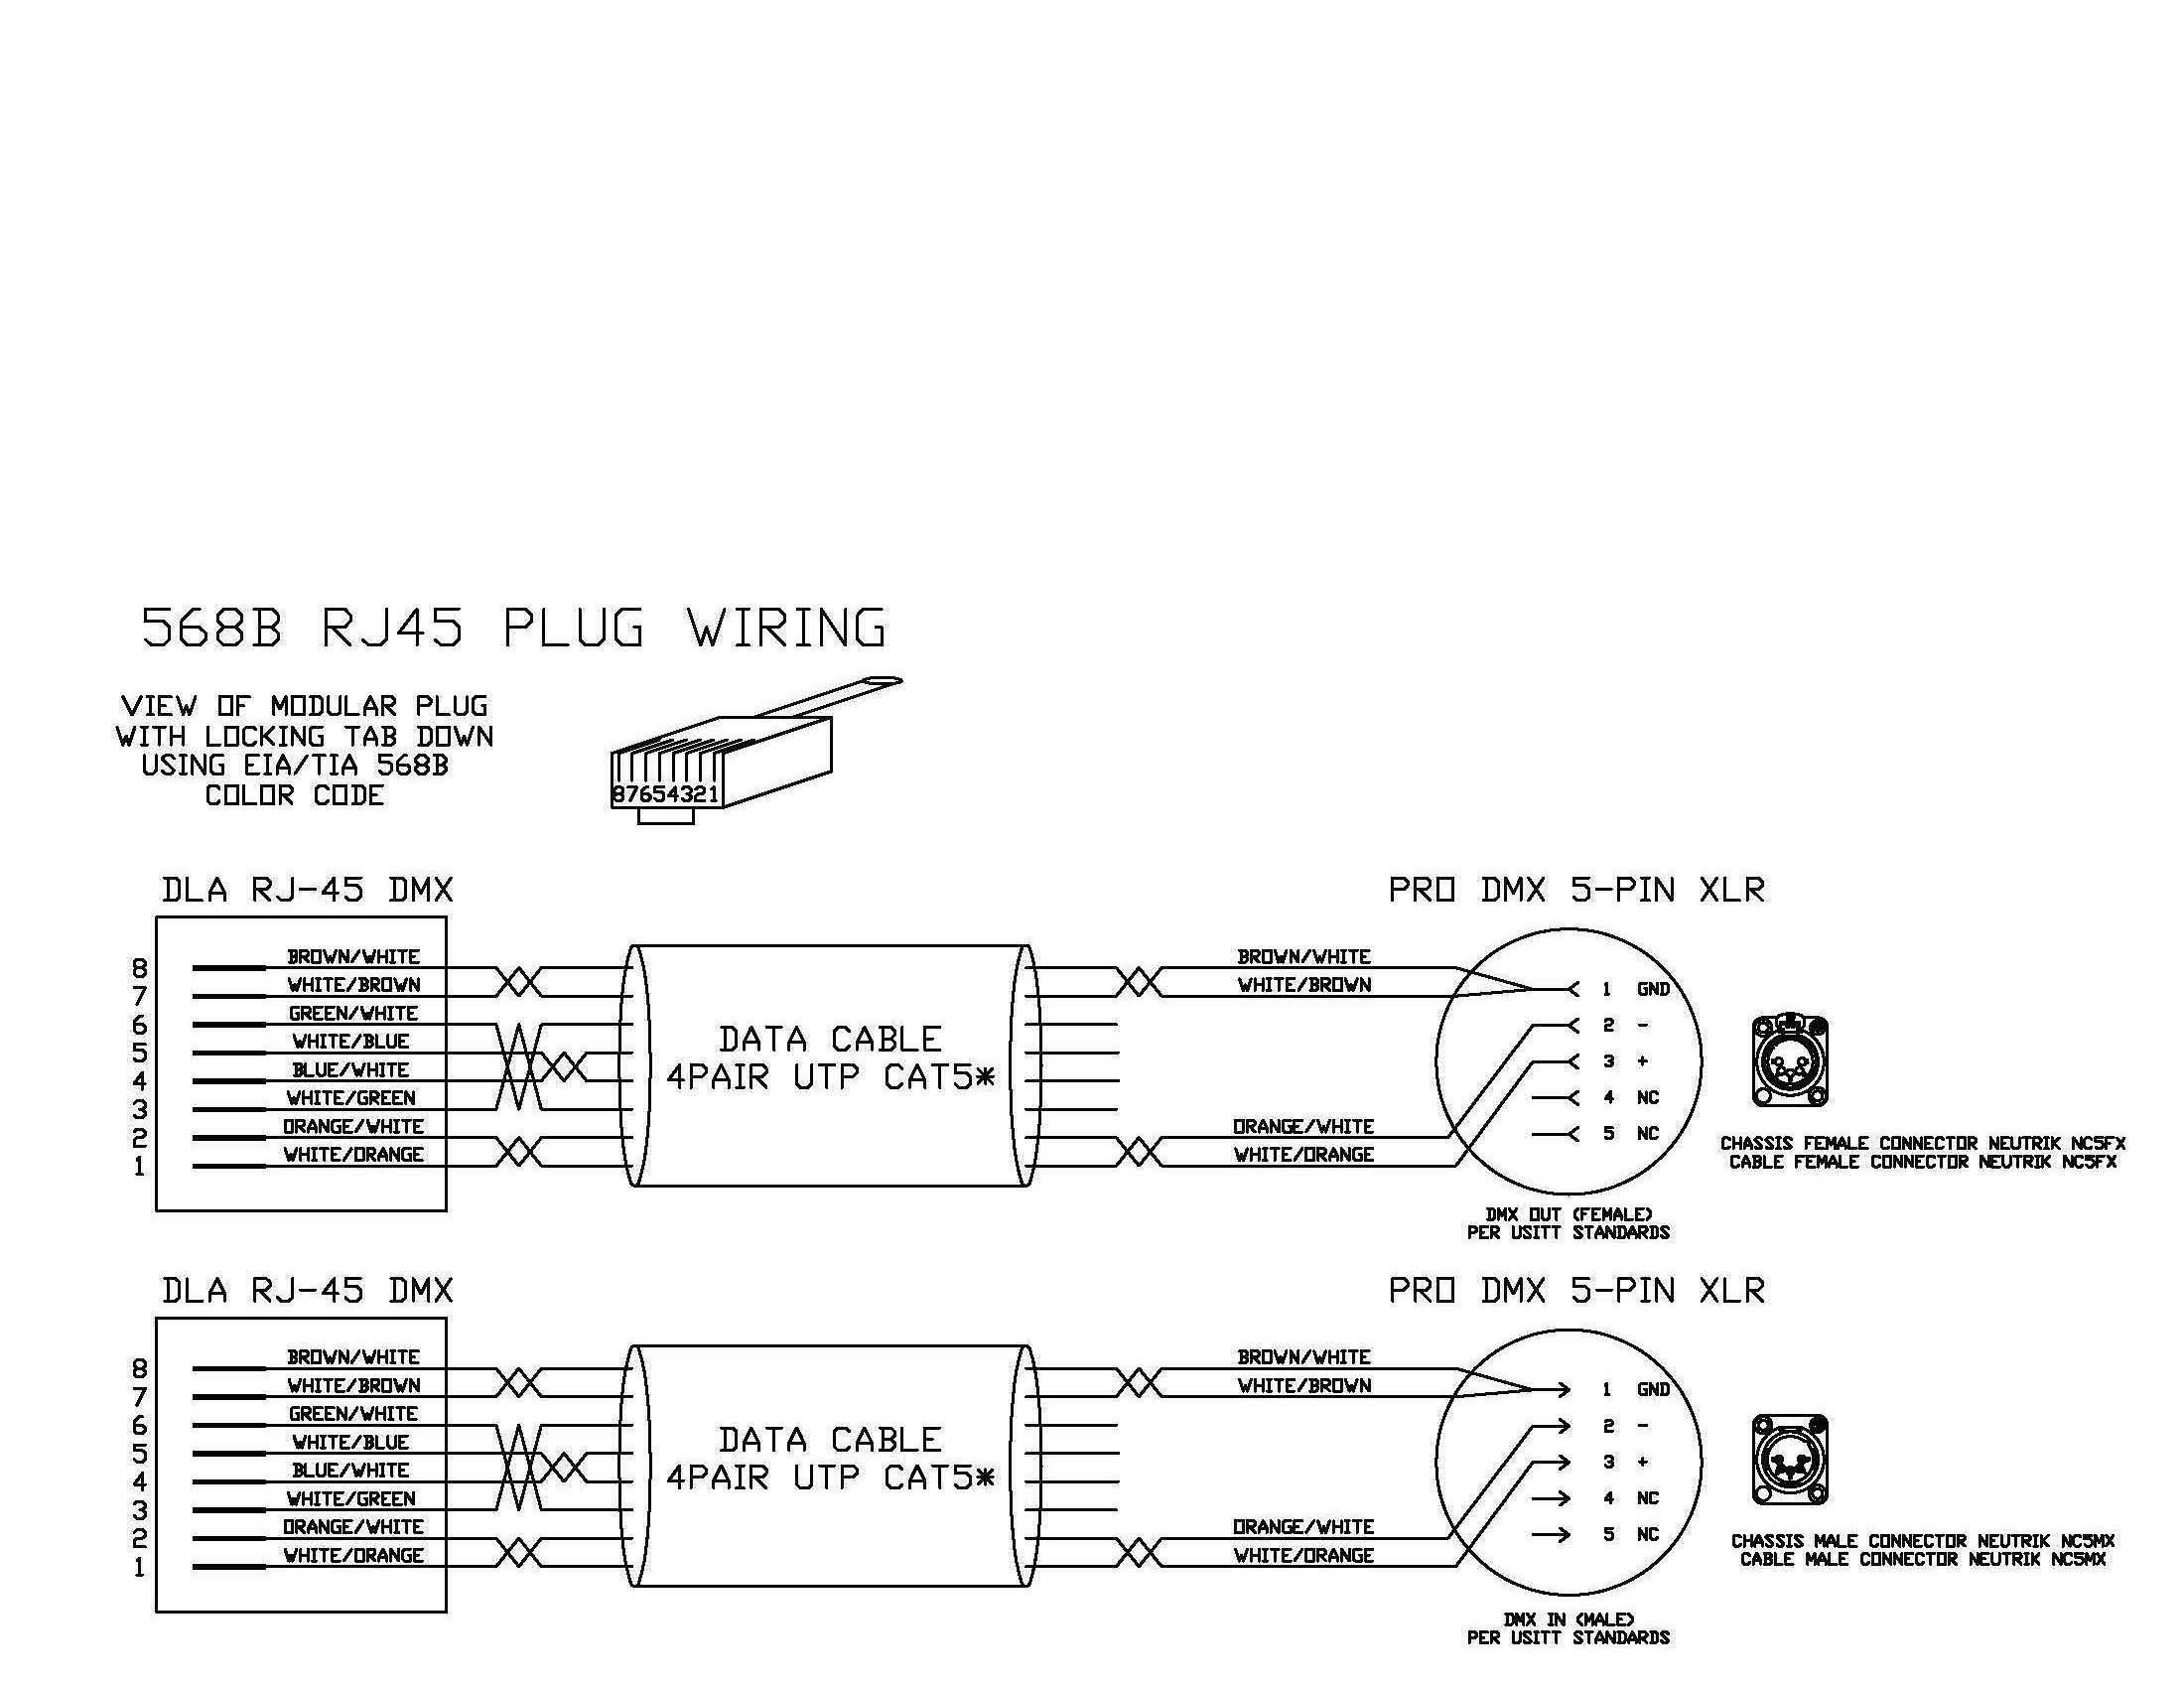 wiring diagram for xlr wiring diagram centrexlr to rj45 wiring diagram xlr electrical wiring diagrams cablesxlr [ 2200 x 1700 Pixel ]